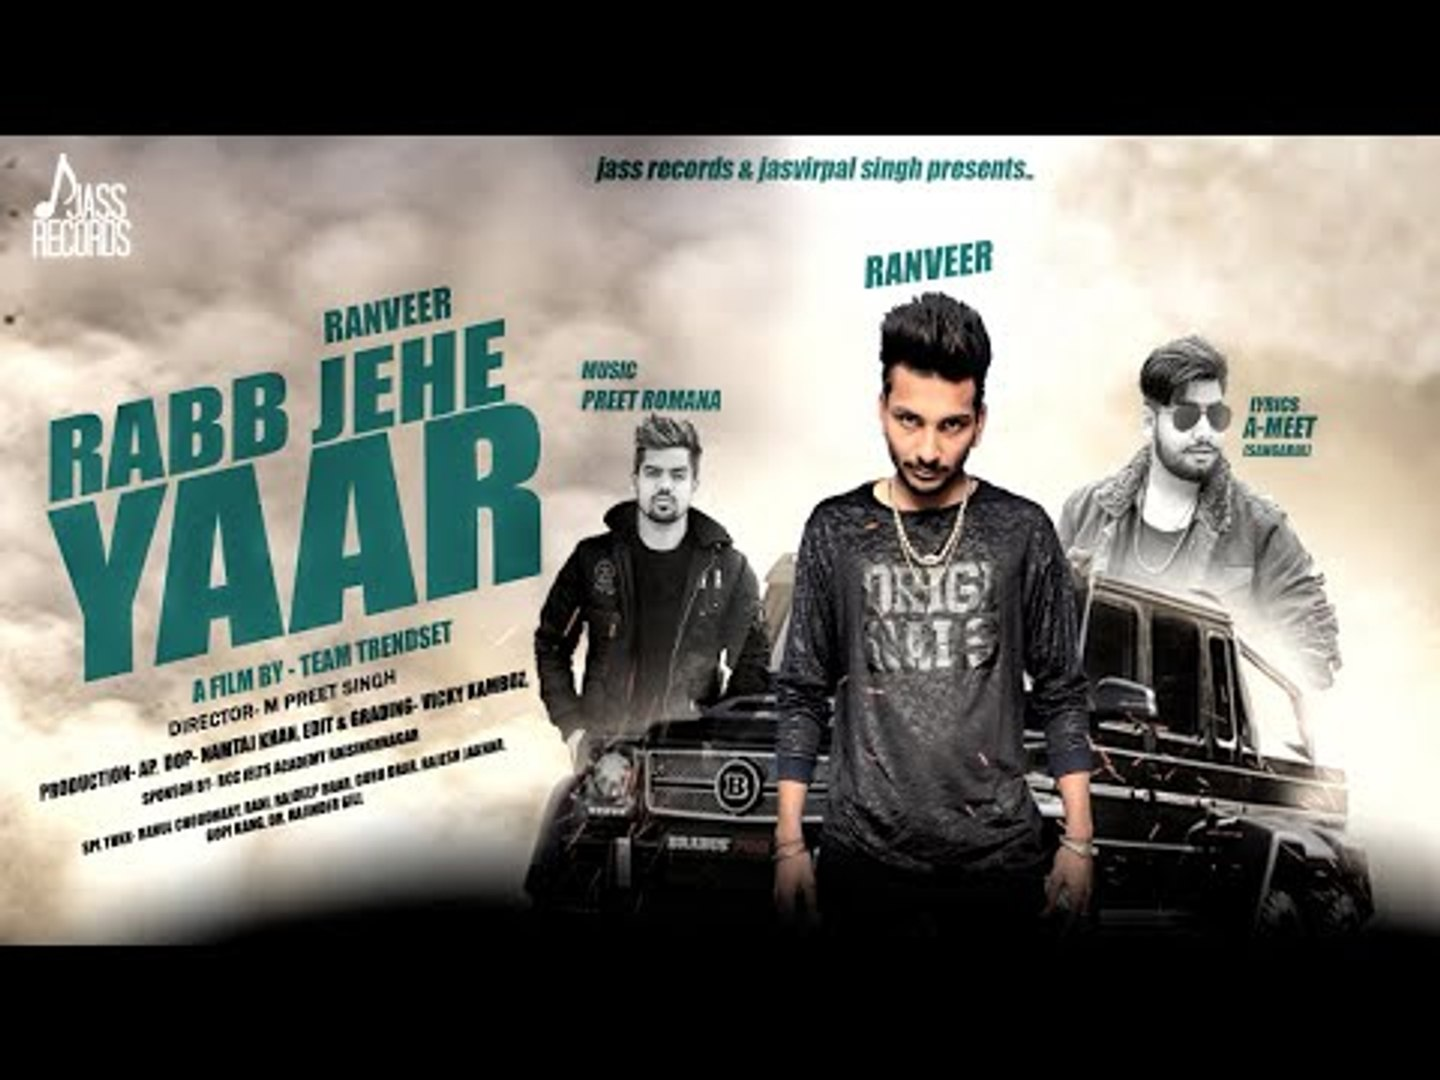 Rabb Jehe Yaar | (Teaser) | Ranveer | New Punjabi Songs 2018 | Latest Punjabi Songs 2018